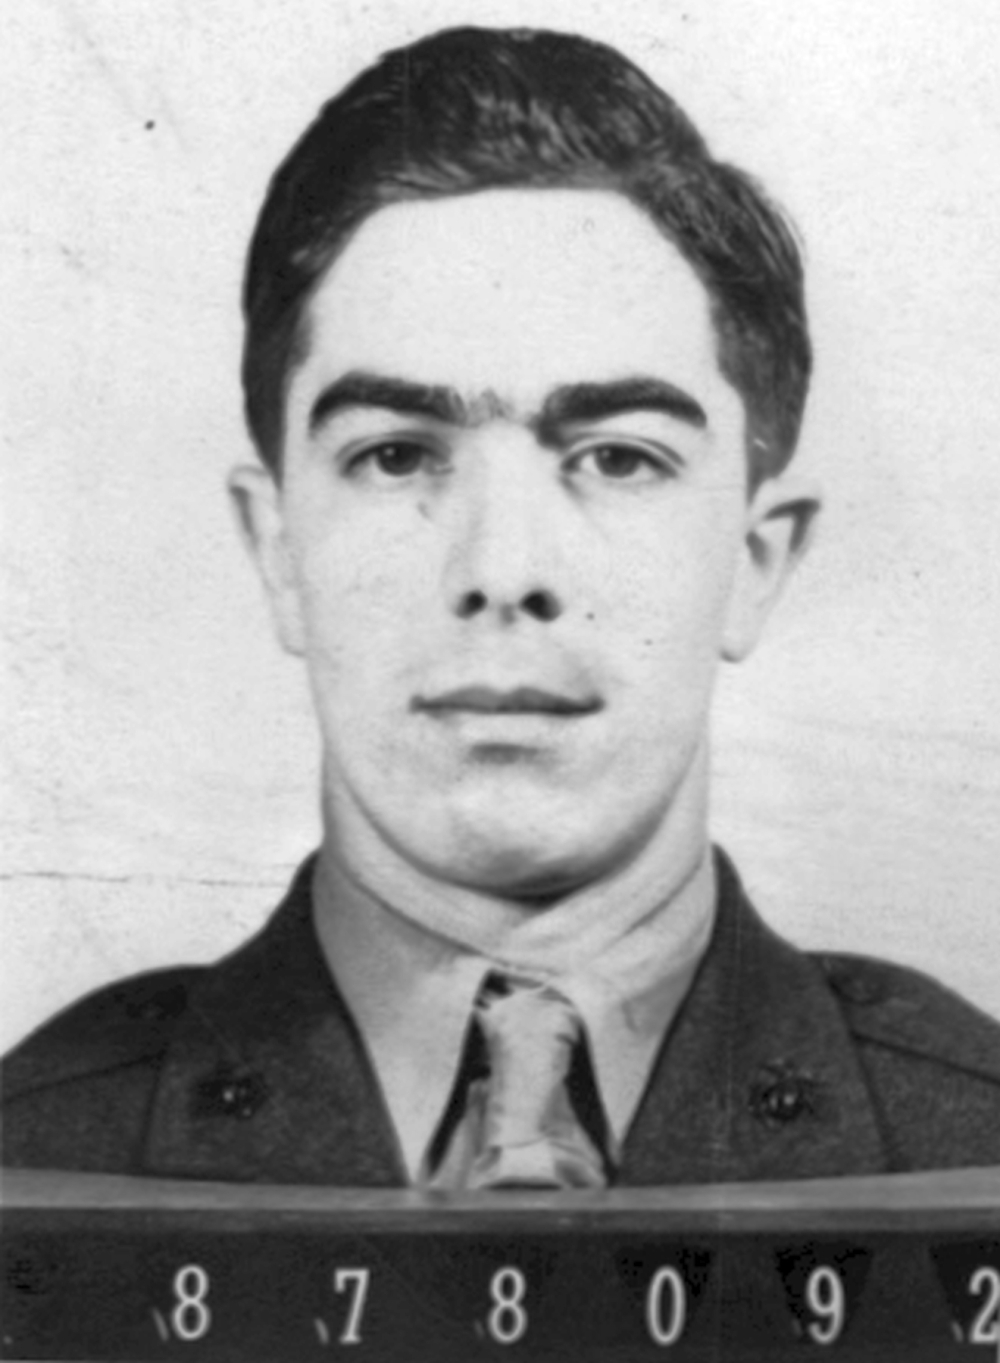 James Joseph Scotella - USMC Photo